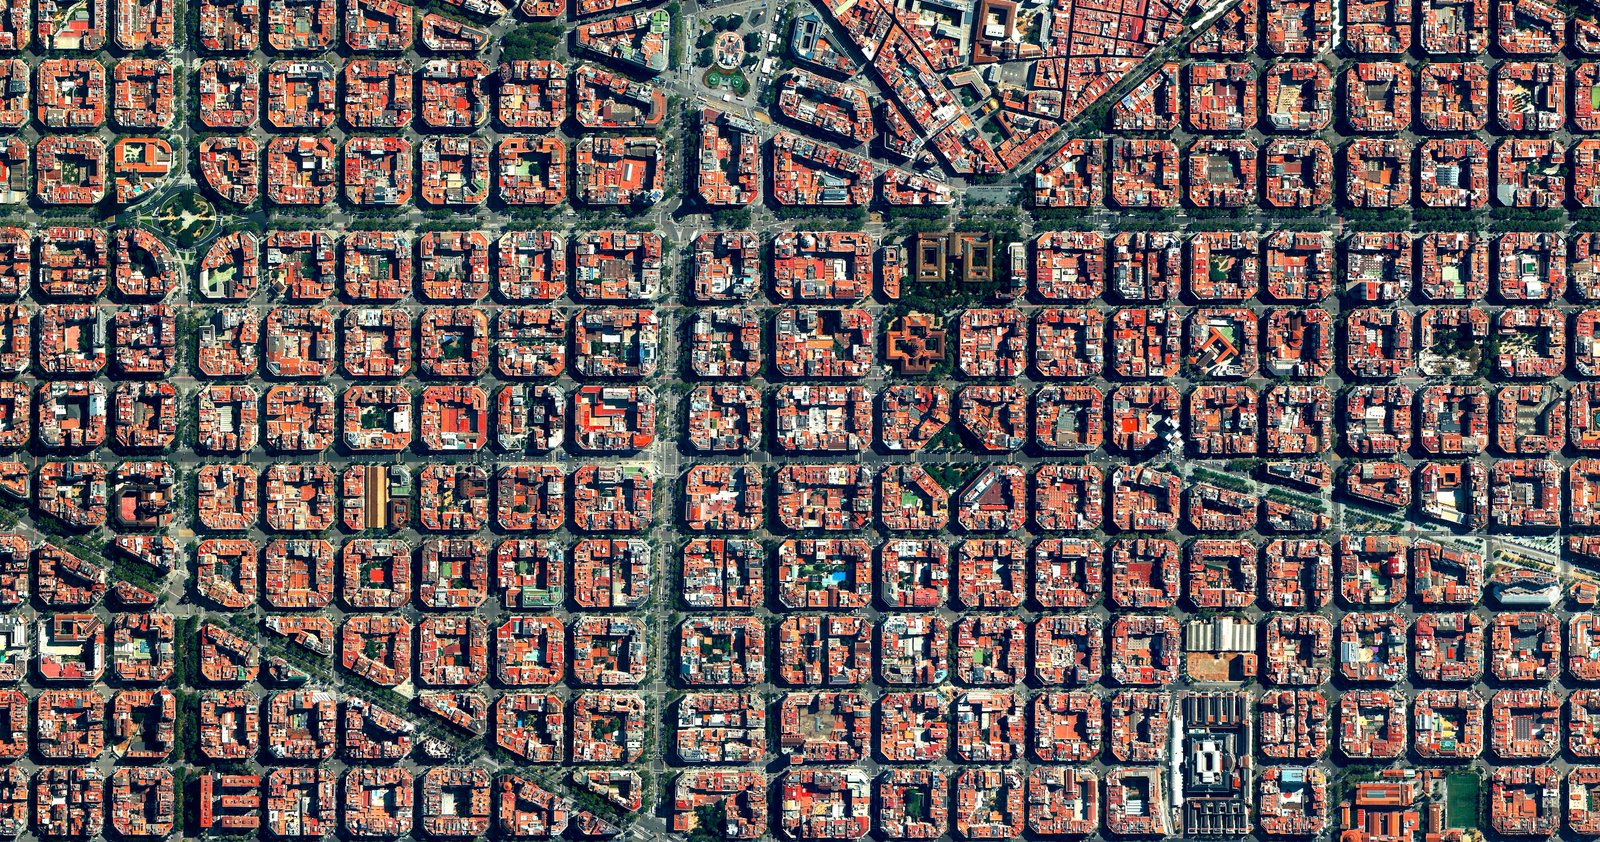 Clusters of housing with communal courtyards are placed along a strict grid pattern in Barcelona's Eixample district, shown here. Reprinted with permission from Overview by Benjamin Grant, copyright (c) 2016. Published by Amphoto Books, a division of Penguin Random House, Inc. Images (c) 2016 by DigitalGlobe, Inc.  Ever Wondered About the View from Space?